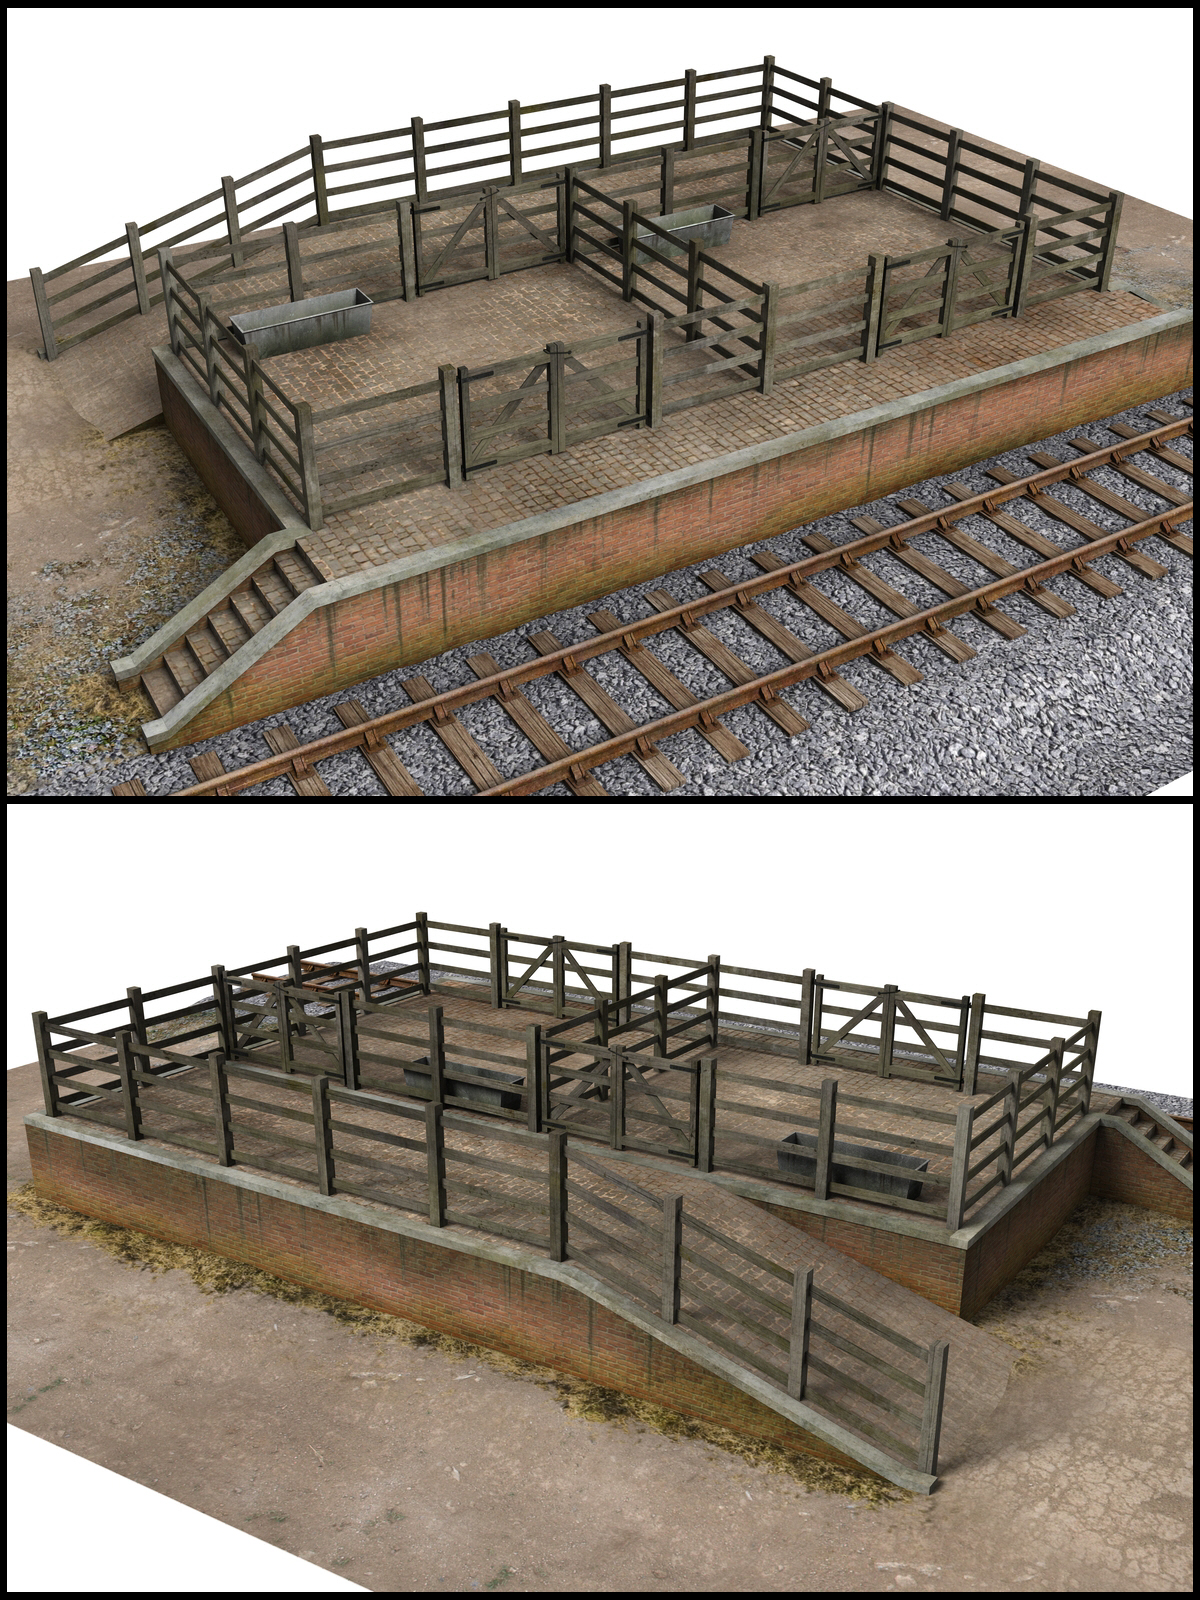 Cattle Dock - Extended License